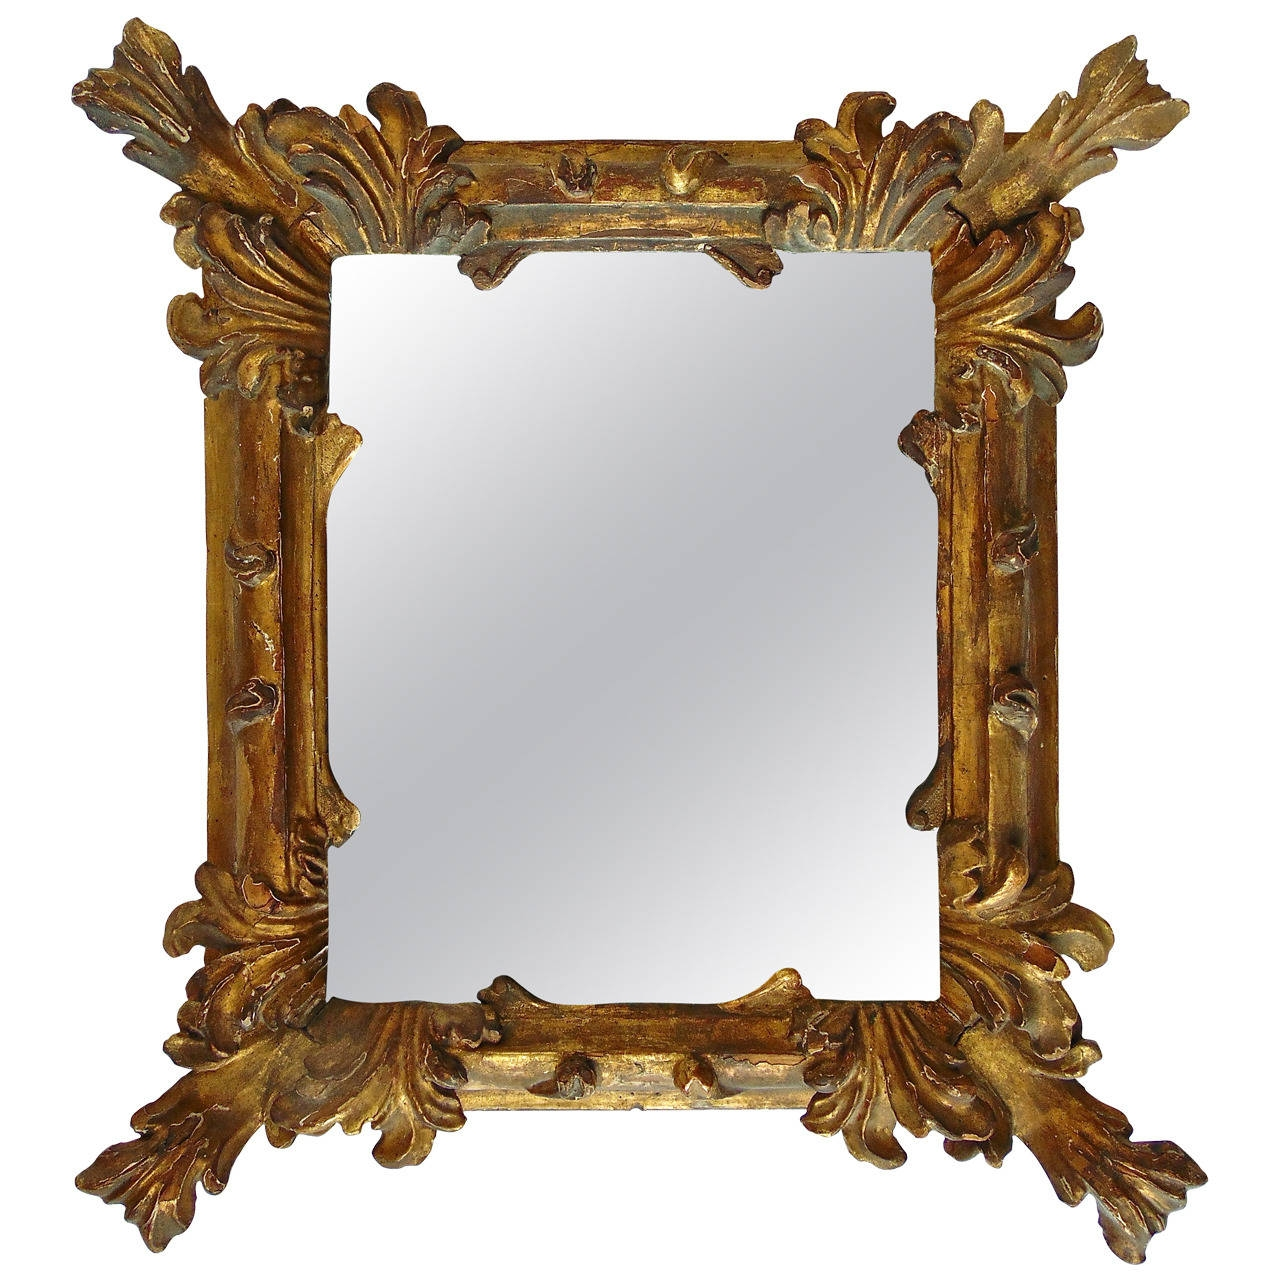 Period 18th Century Italian Baroque Carved Gilt Mirror Baroque Intended For Modern Baroque Mirror (Image 13 of 15)